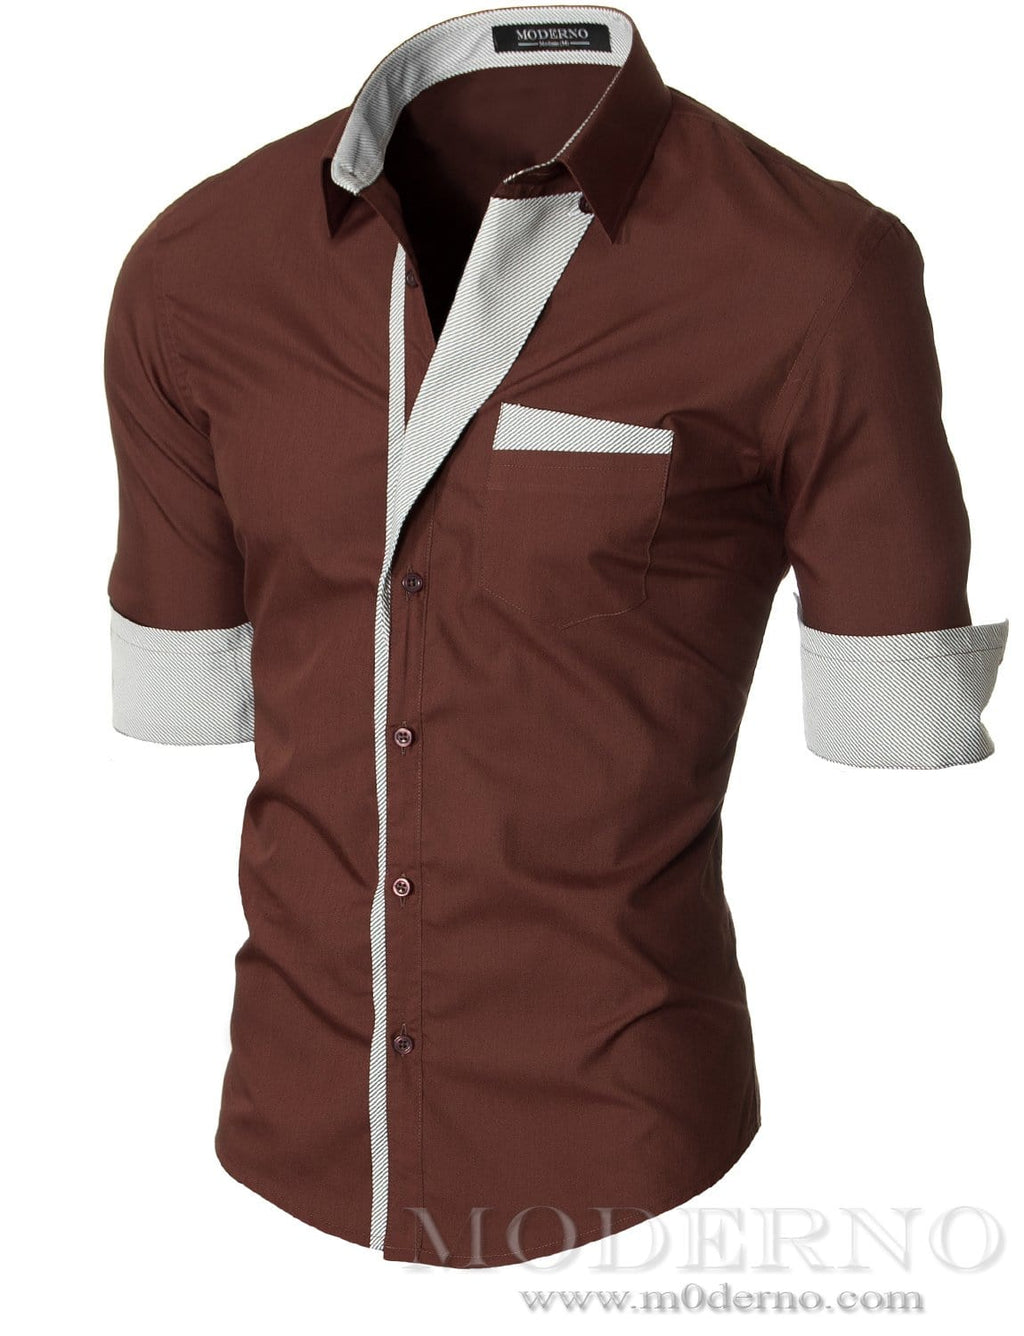 Mens slim fit button up long sleeve dress shirt brown (VGDS41LS) - MODERNO